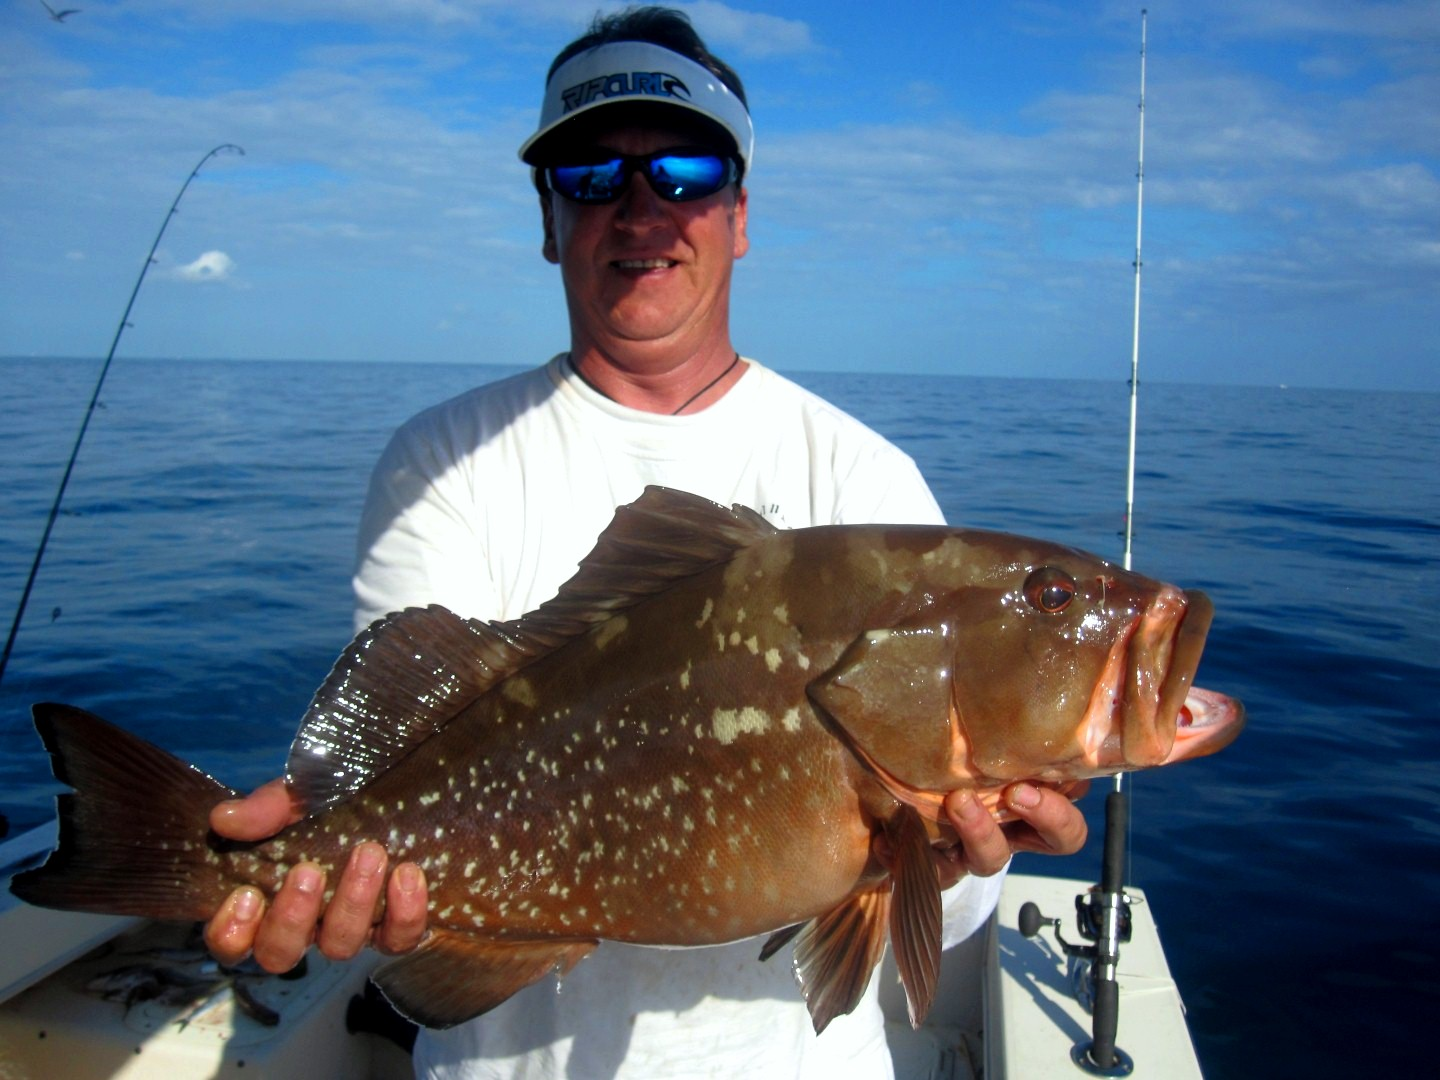 Key west report 1 18 2012 mickey 39 s guide service for Keys fishing report